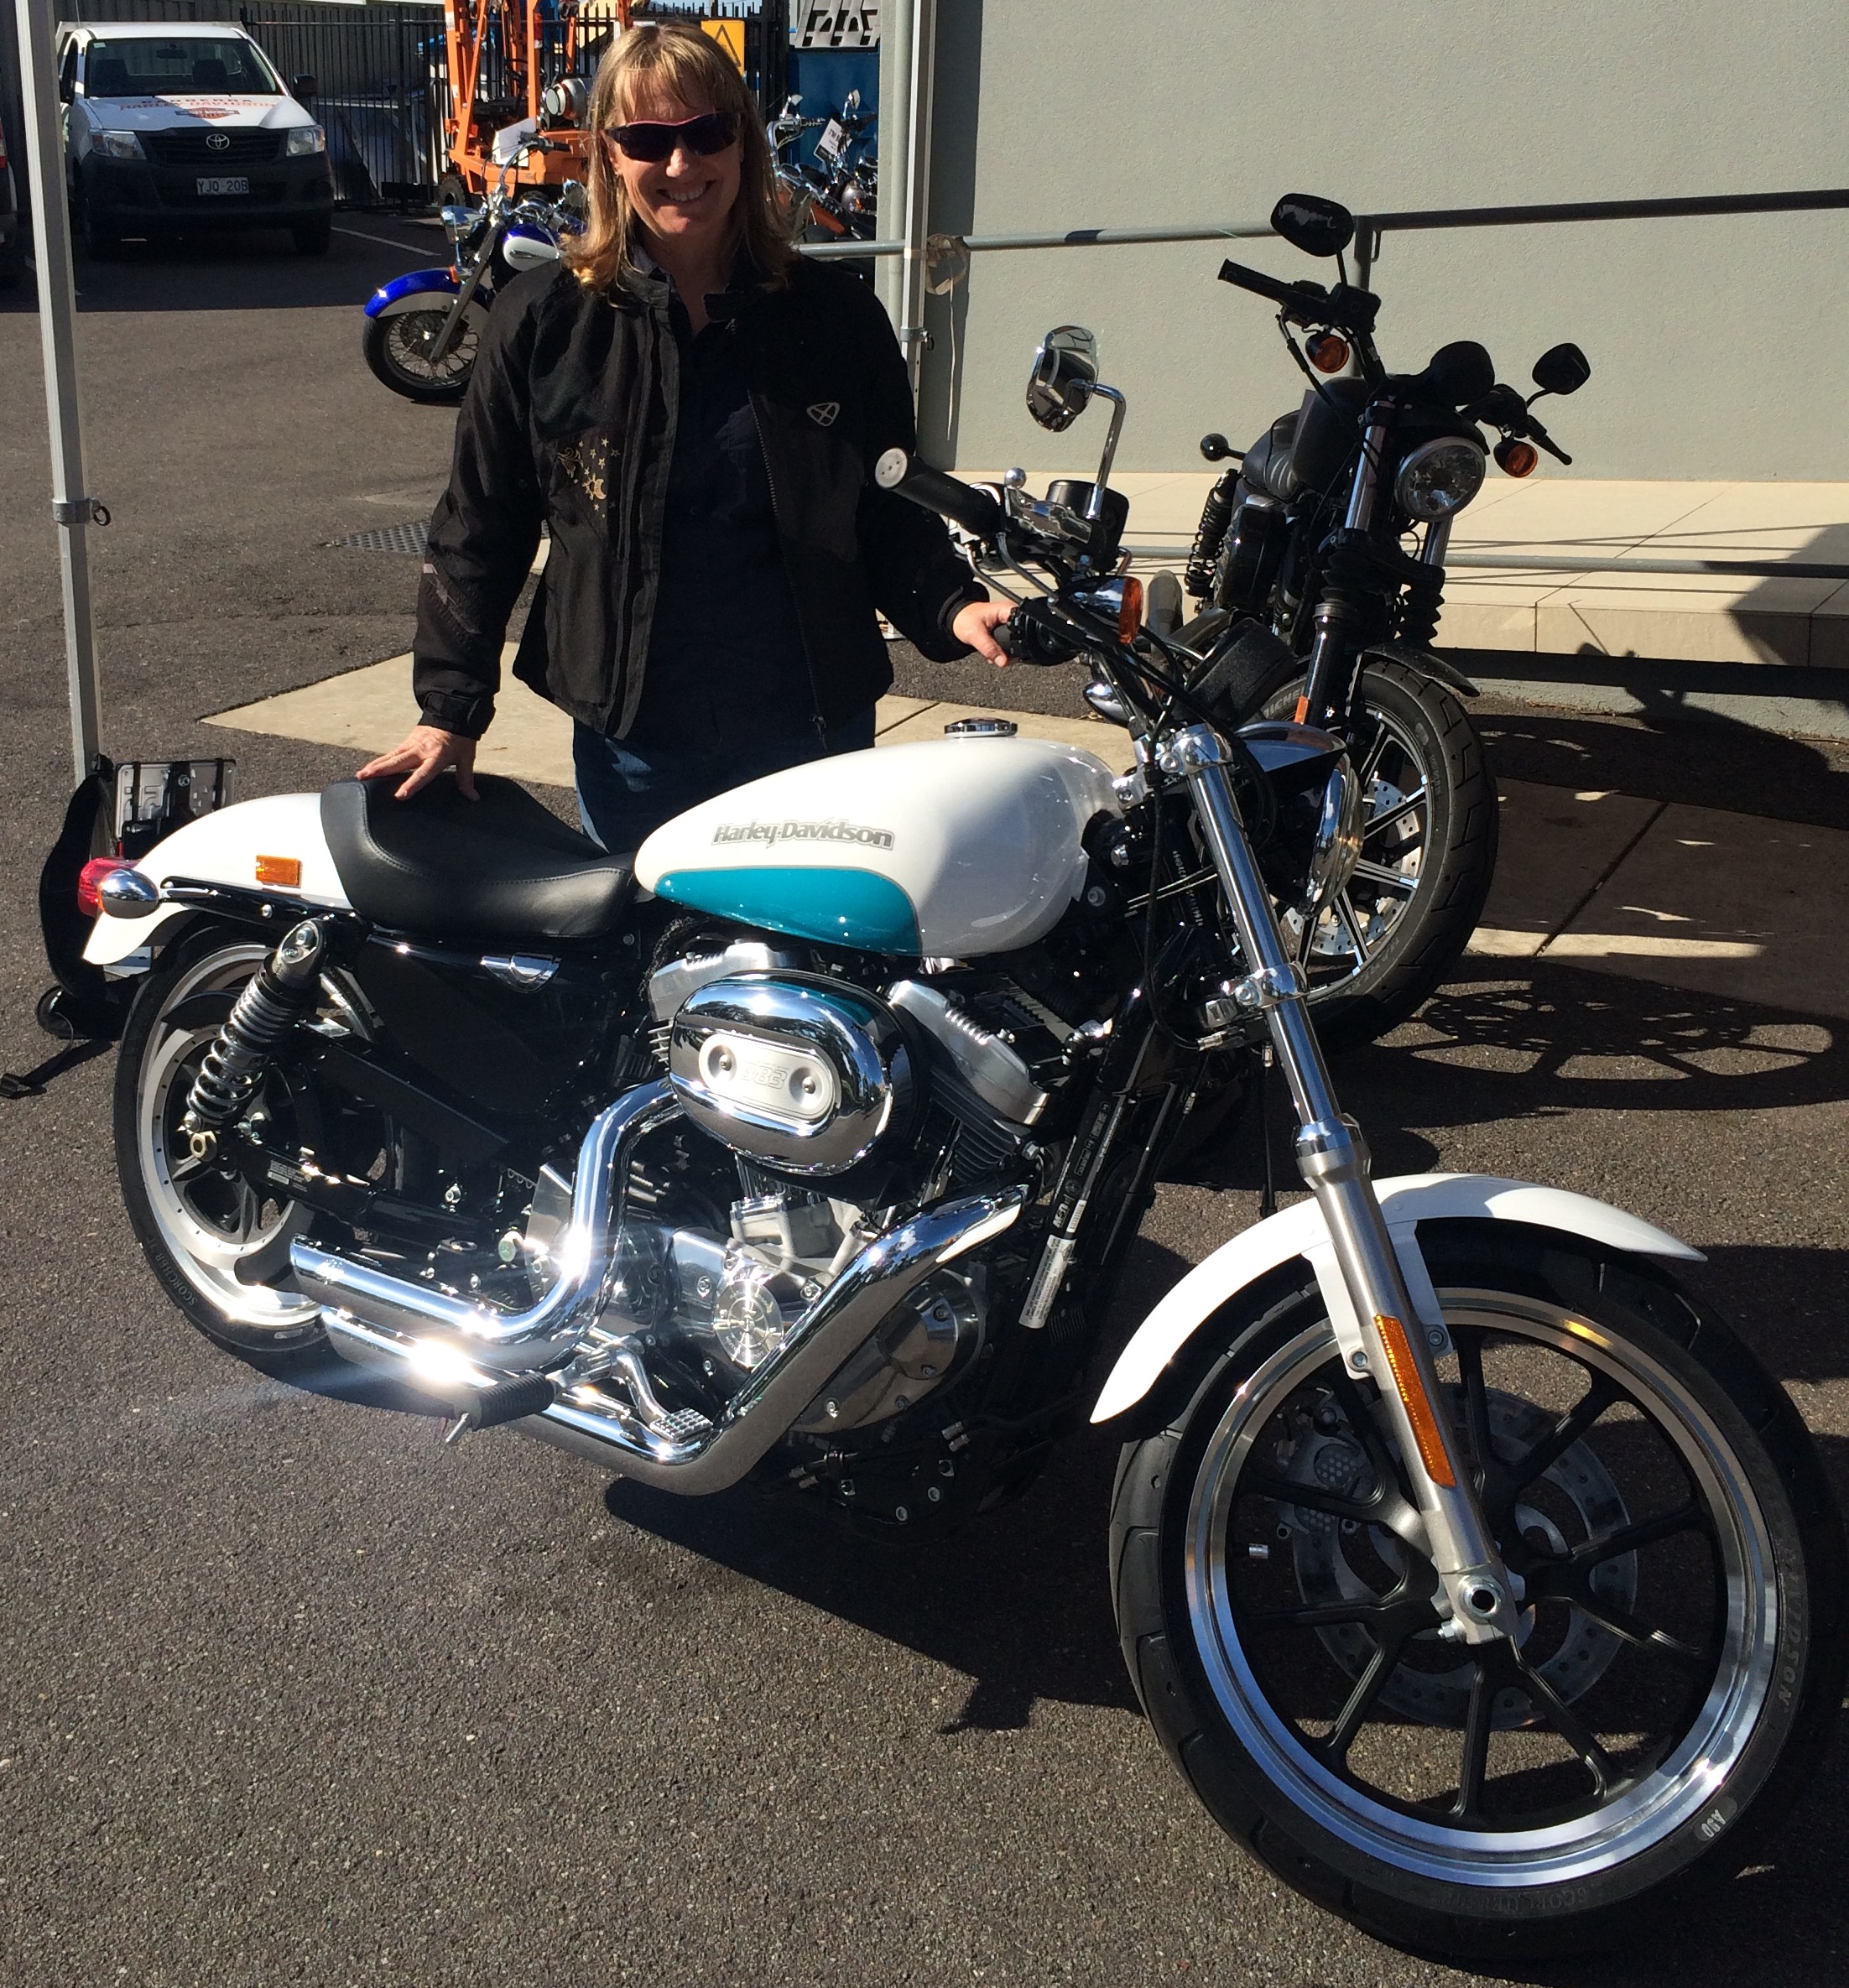 Heather Blair with a Harley Davidson motorbike